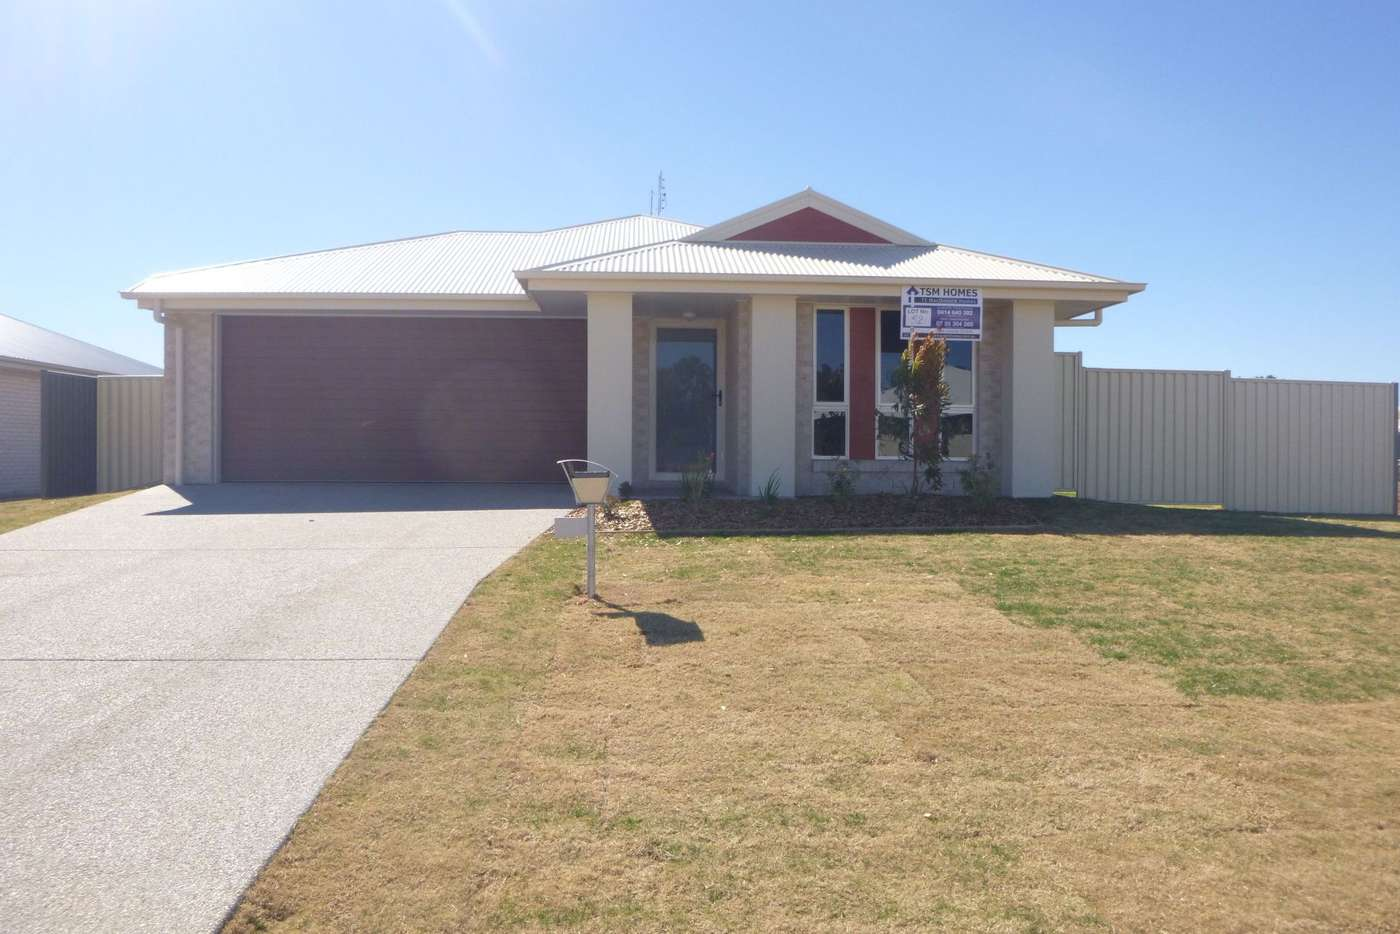 Main view of Homely house listing, 47 Frame St, Chinchilla QLD 4413